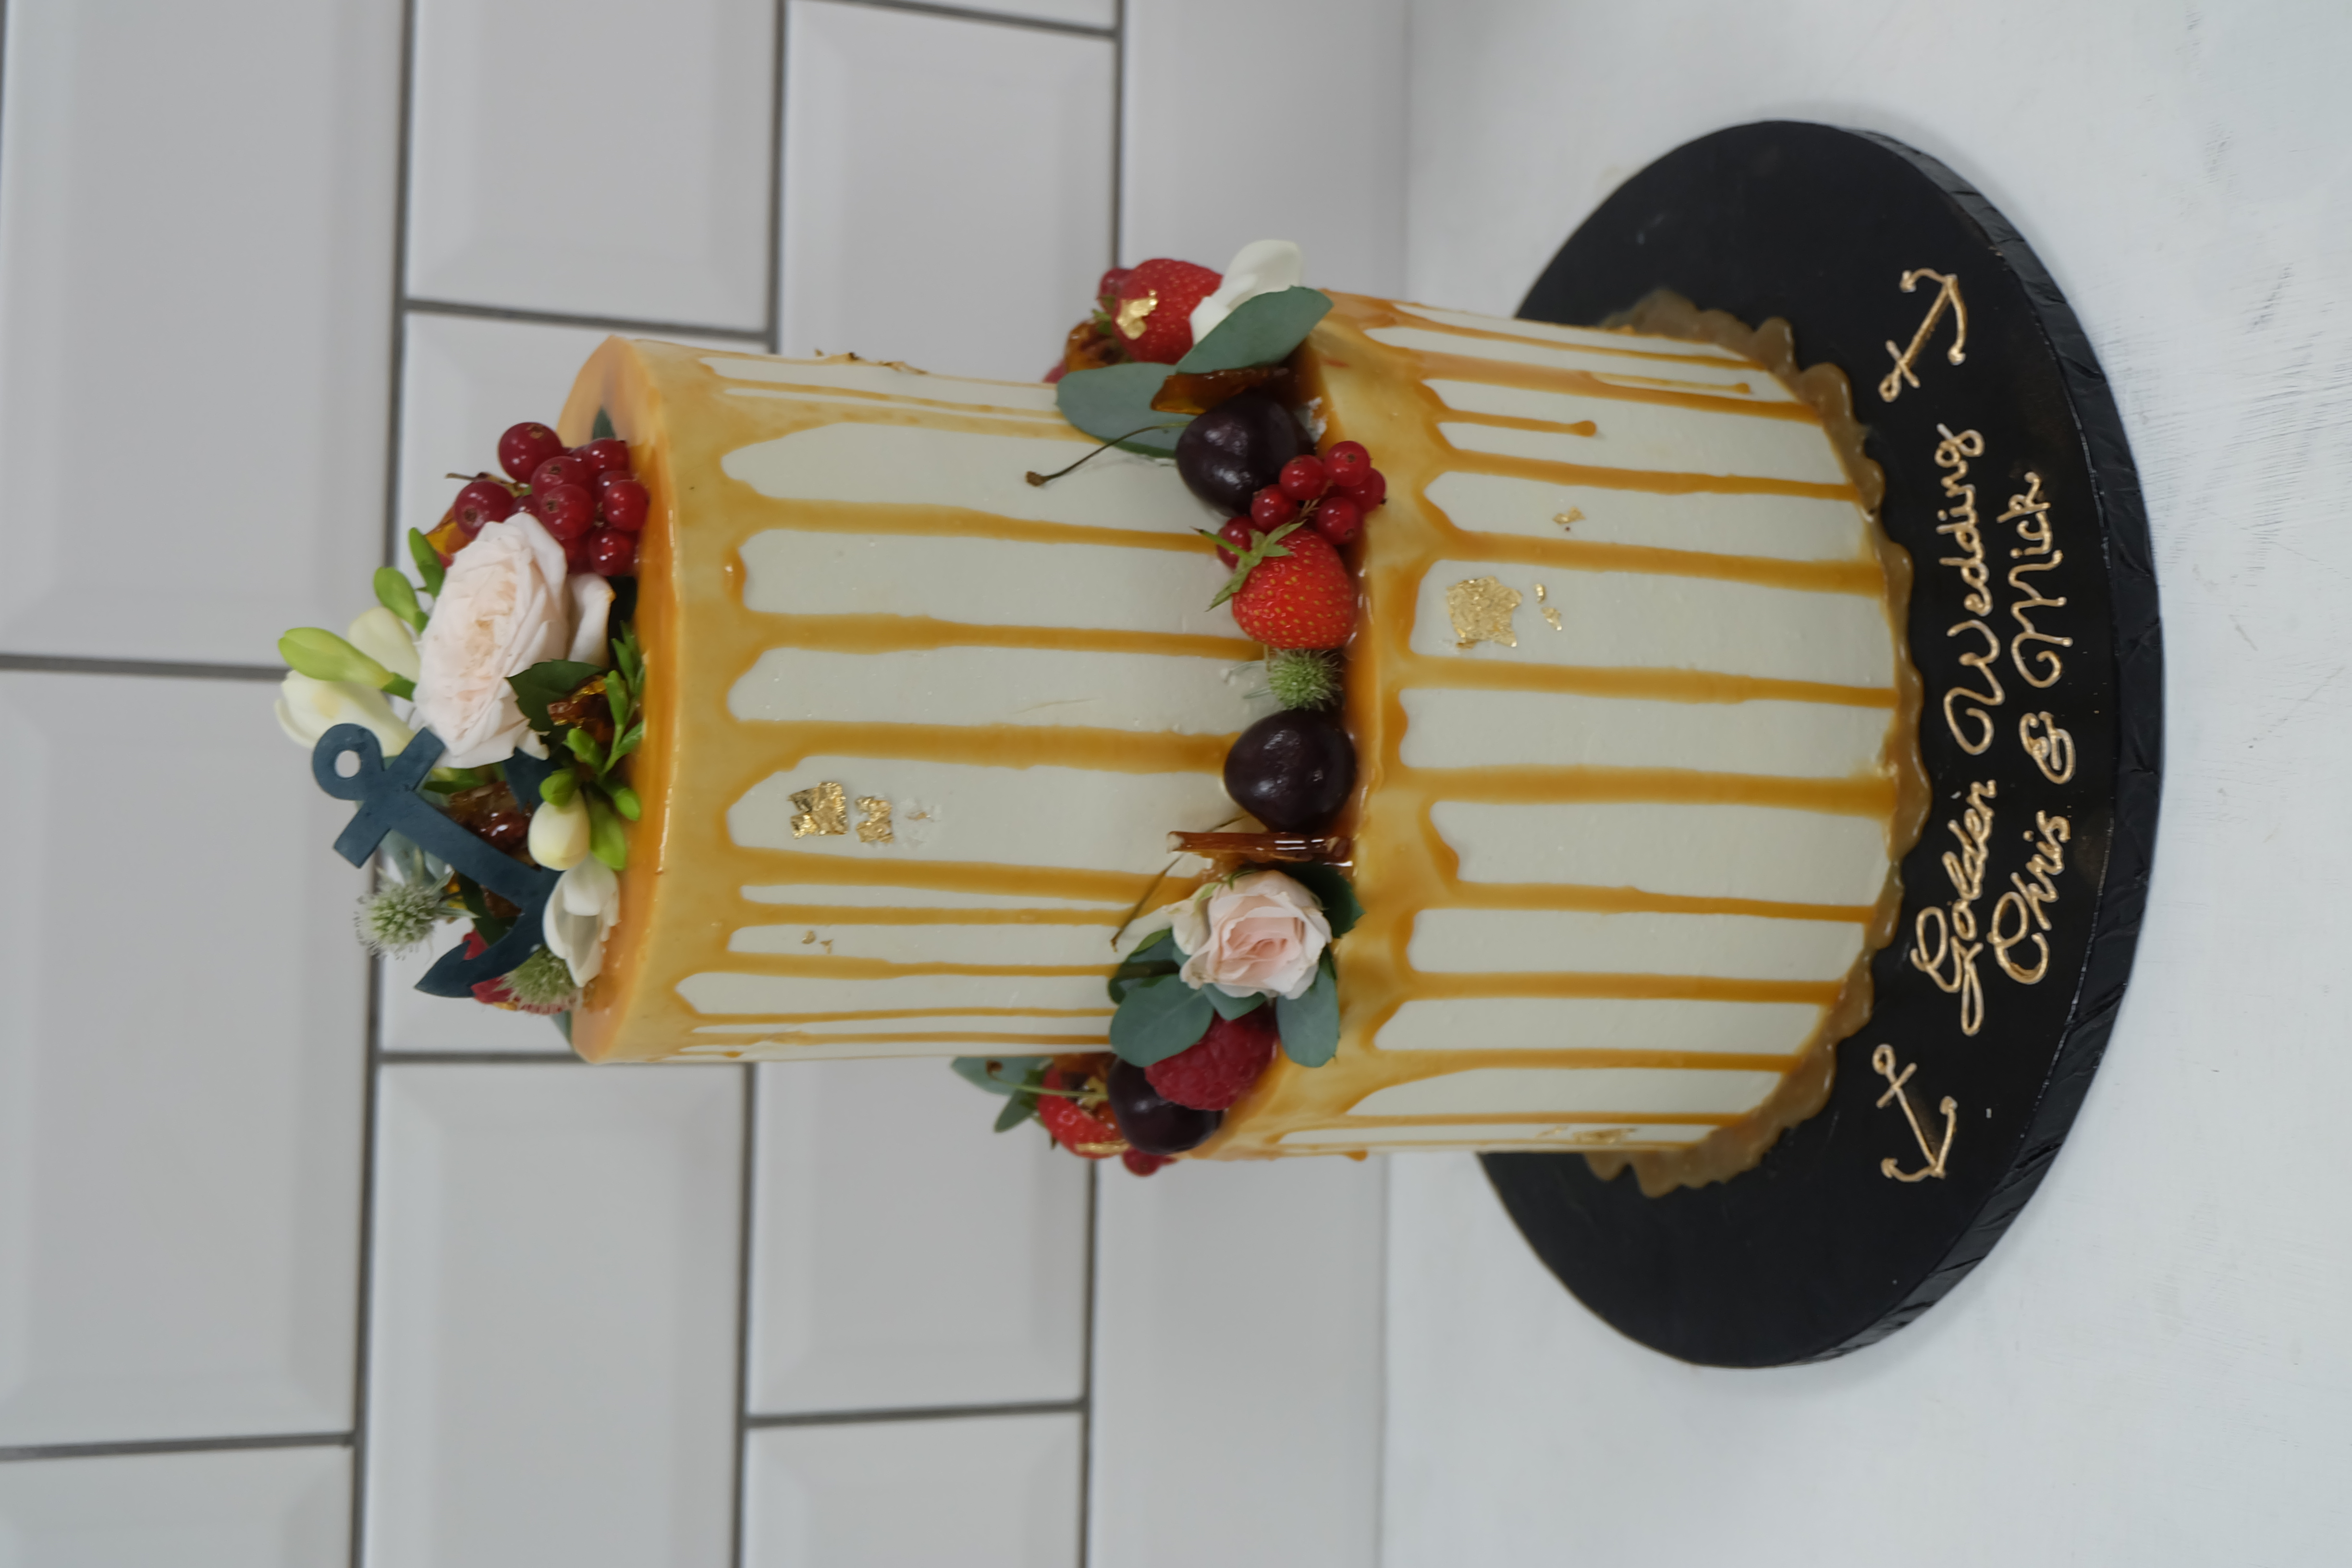 Caramel Drip Cake with Fruits and Flower